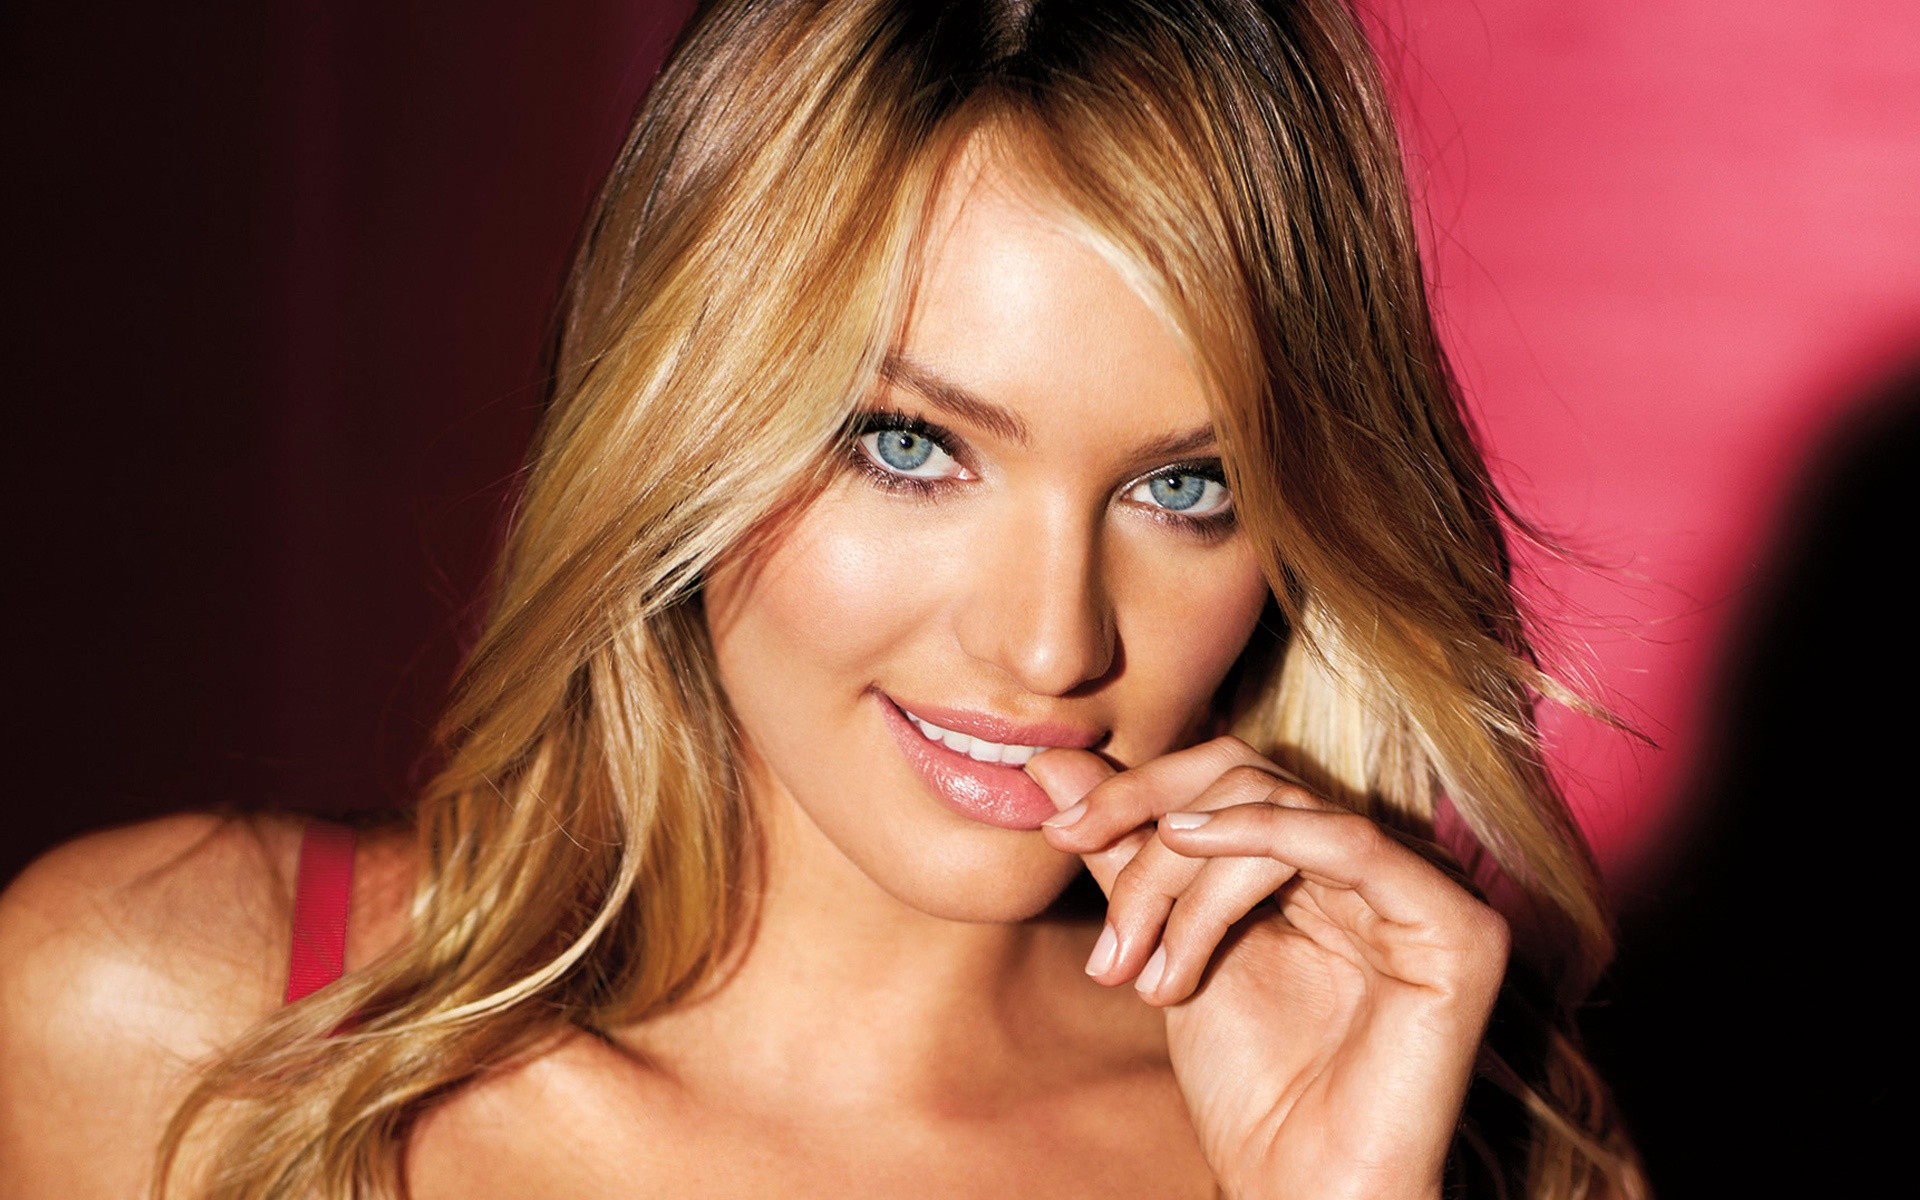 Candice swanepoel model